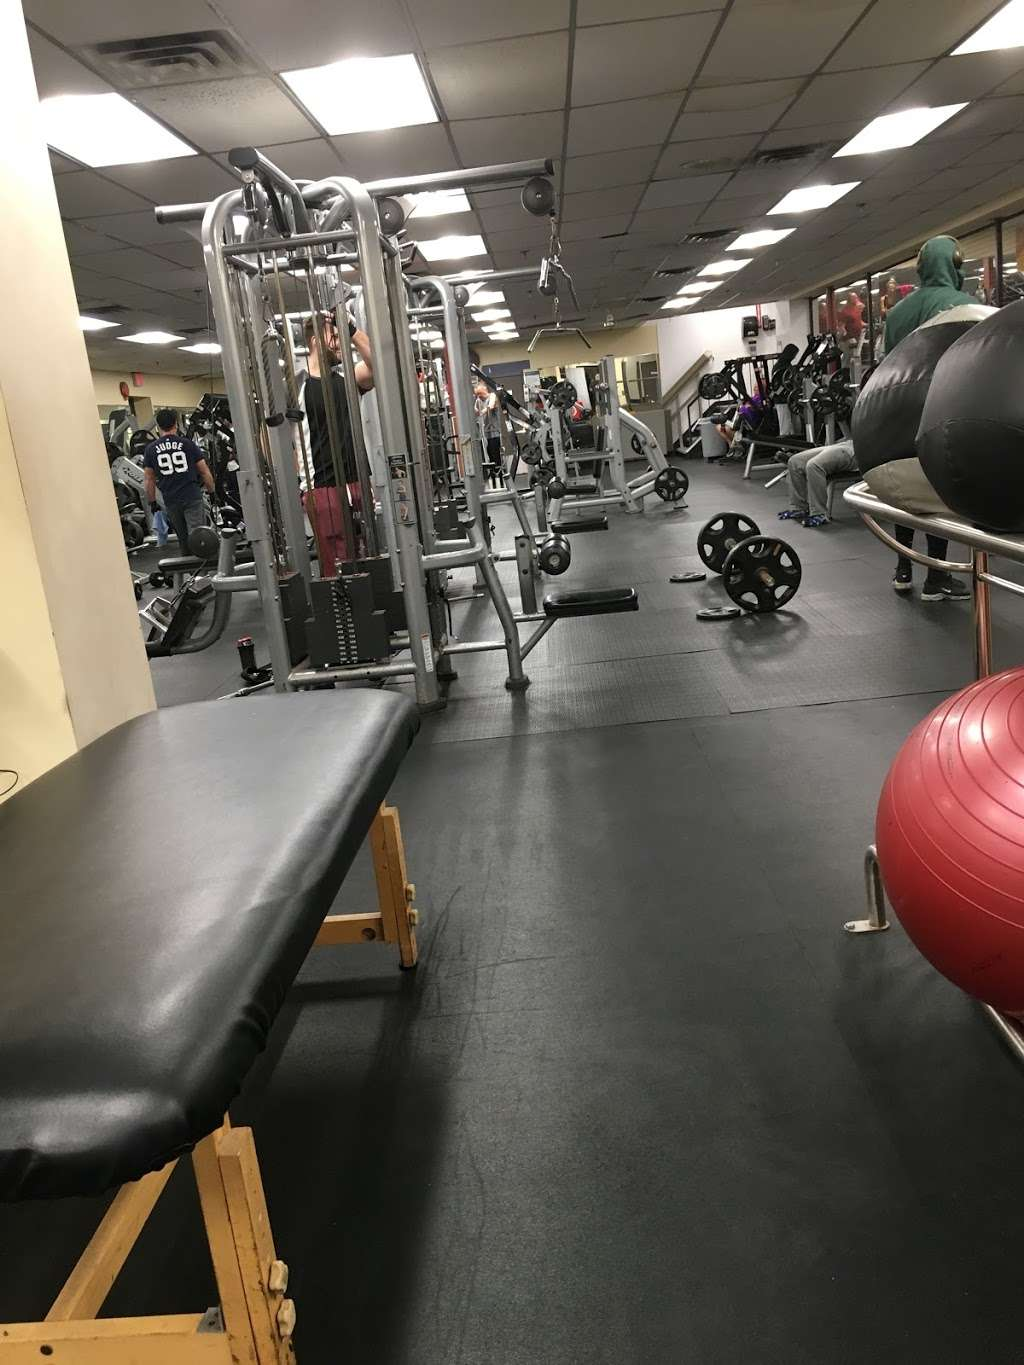 24 Hour Fitness - gym  | Photo 1 of 10 | Address: 589 Tuckahoe Rd, Yonkers, NY 10710, USA | Phone: (914) 793-3100